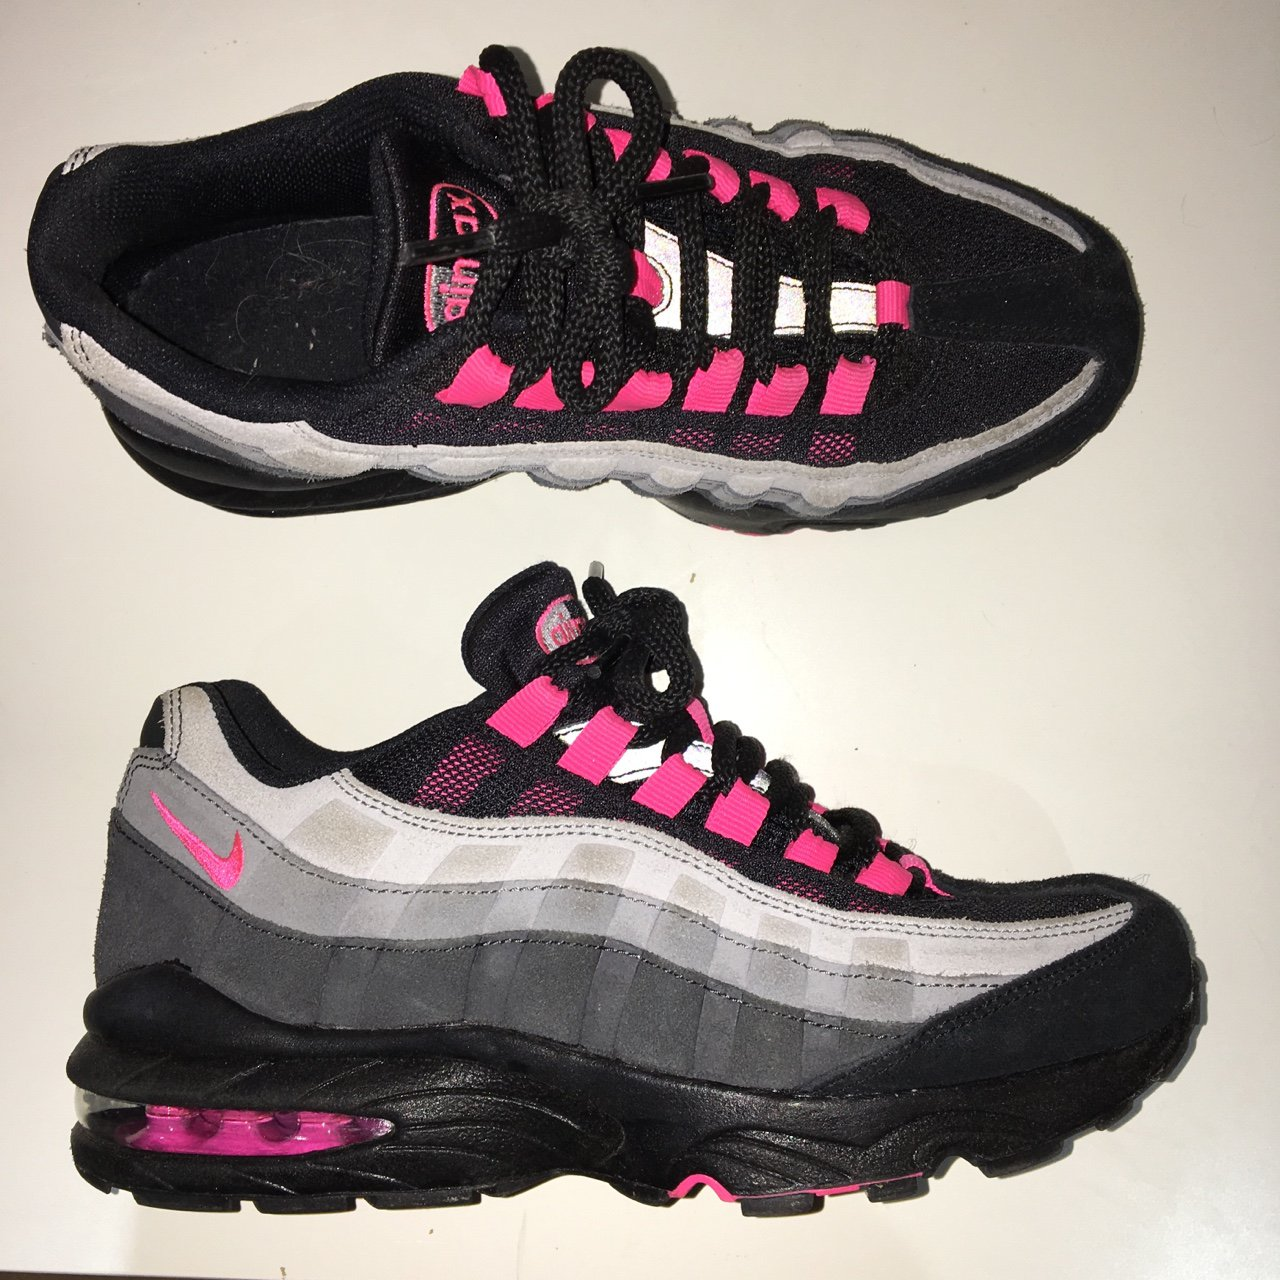 46cea58195 @svphiescott. 2 years ago. Warlingham, United Kingdom. Nike Air Max 95  Junior in Pink, Black ...